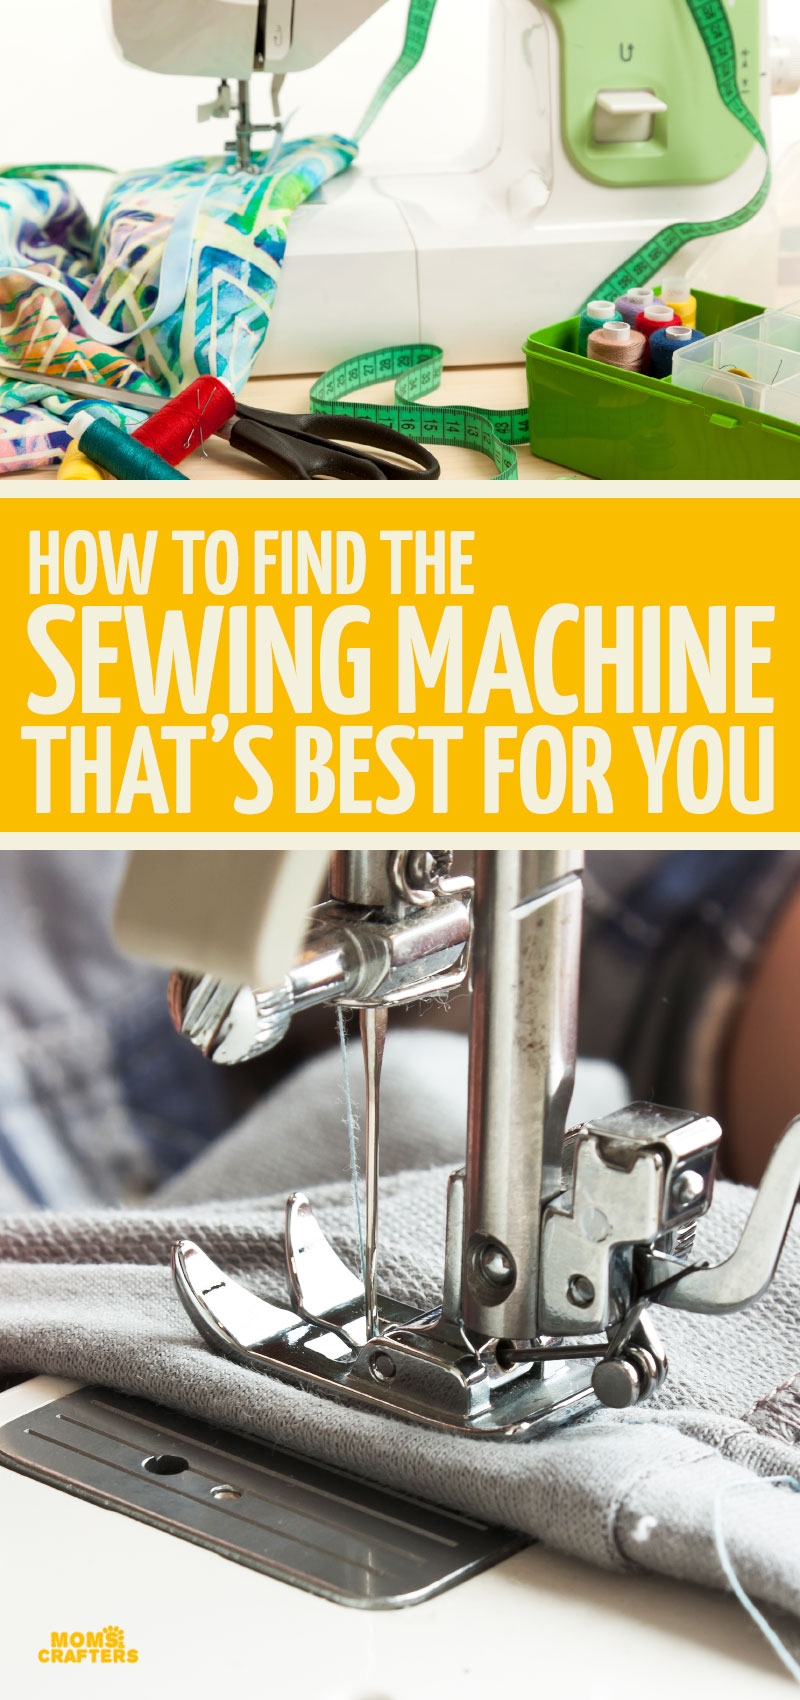 Click to learn how to choose the best sewing machine for your needs! These sewing machine reviews include heavy duty sewing, beginners, professionals, tips for sewing leather, and more!